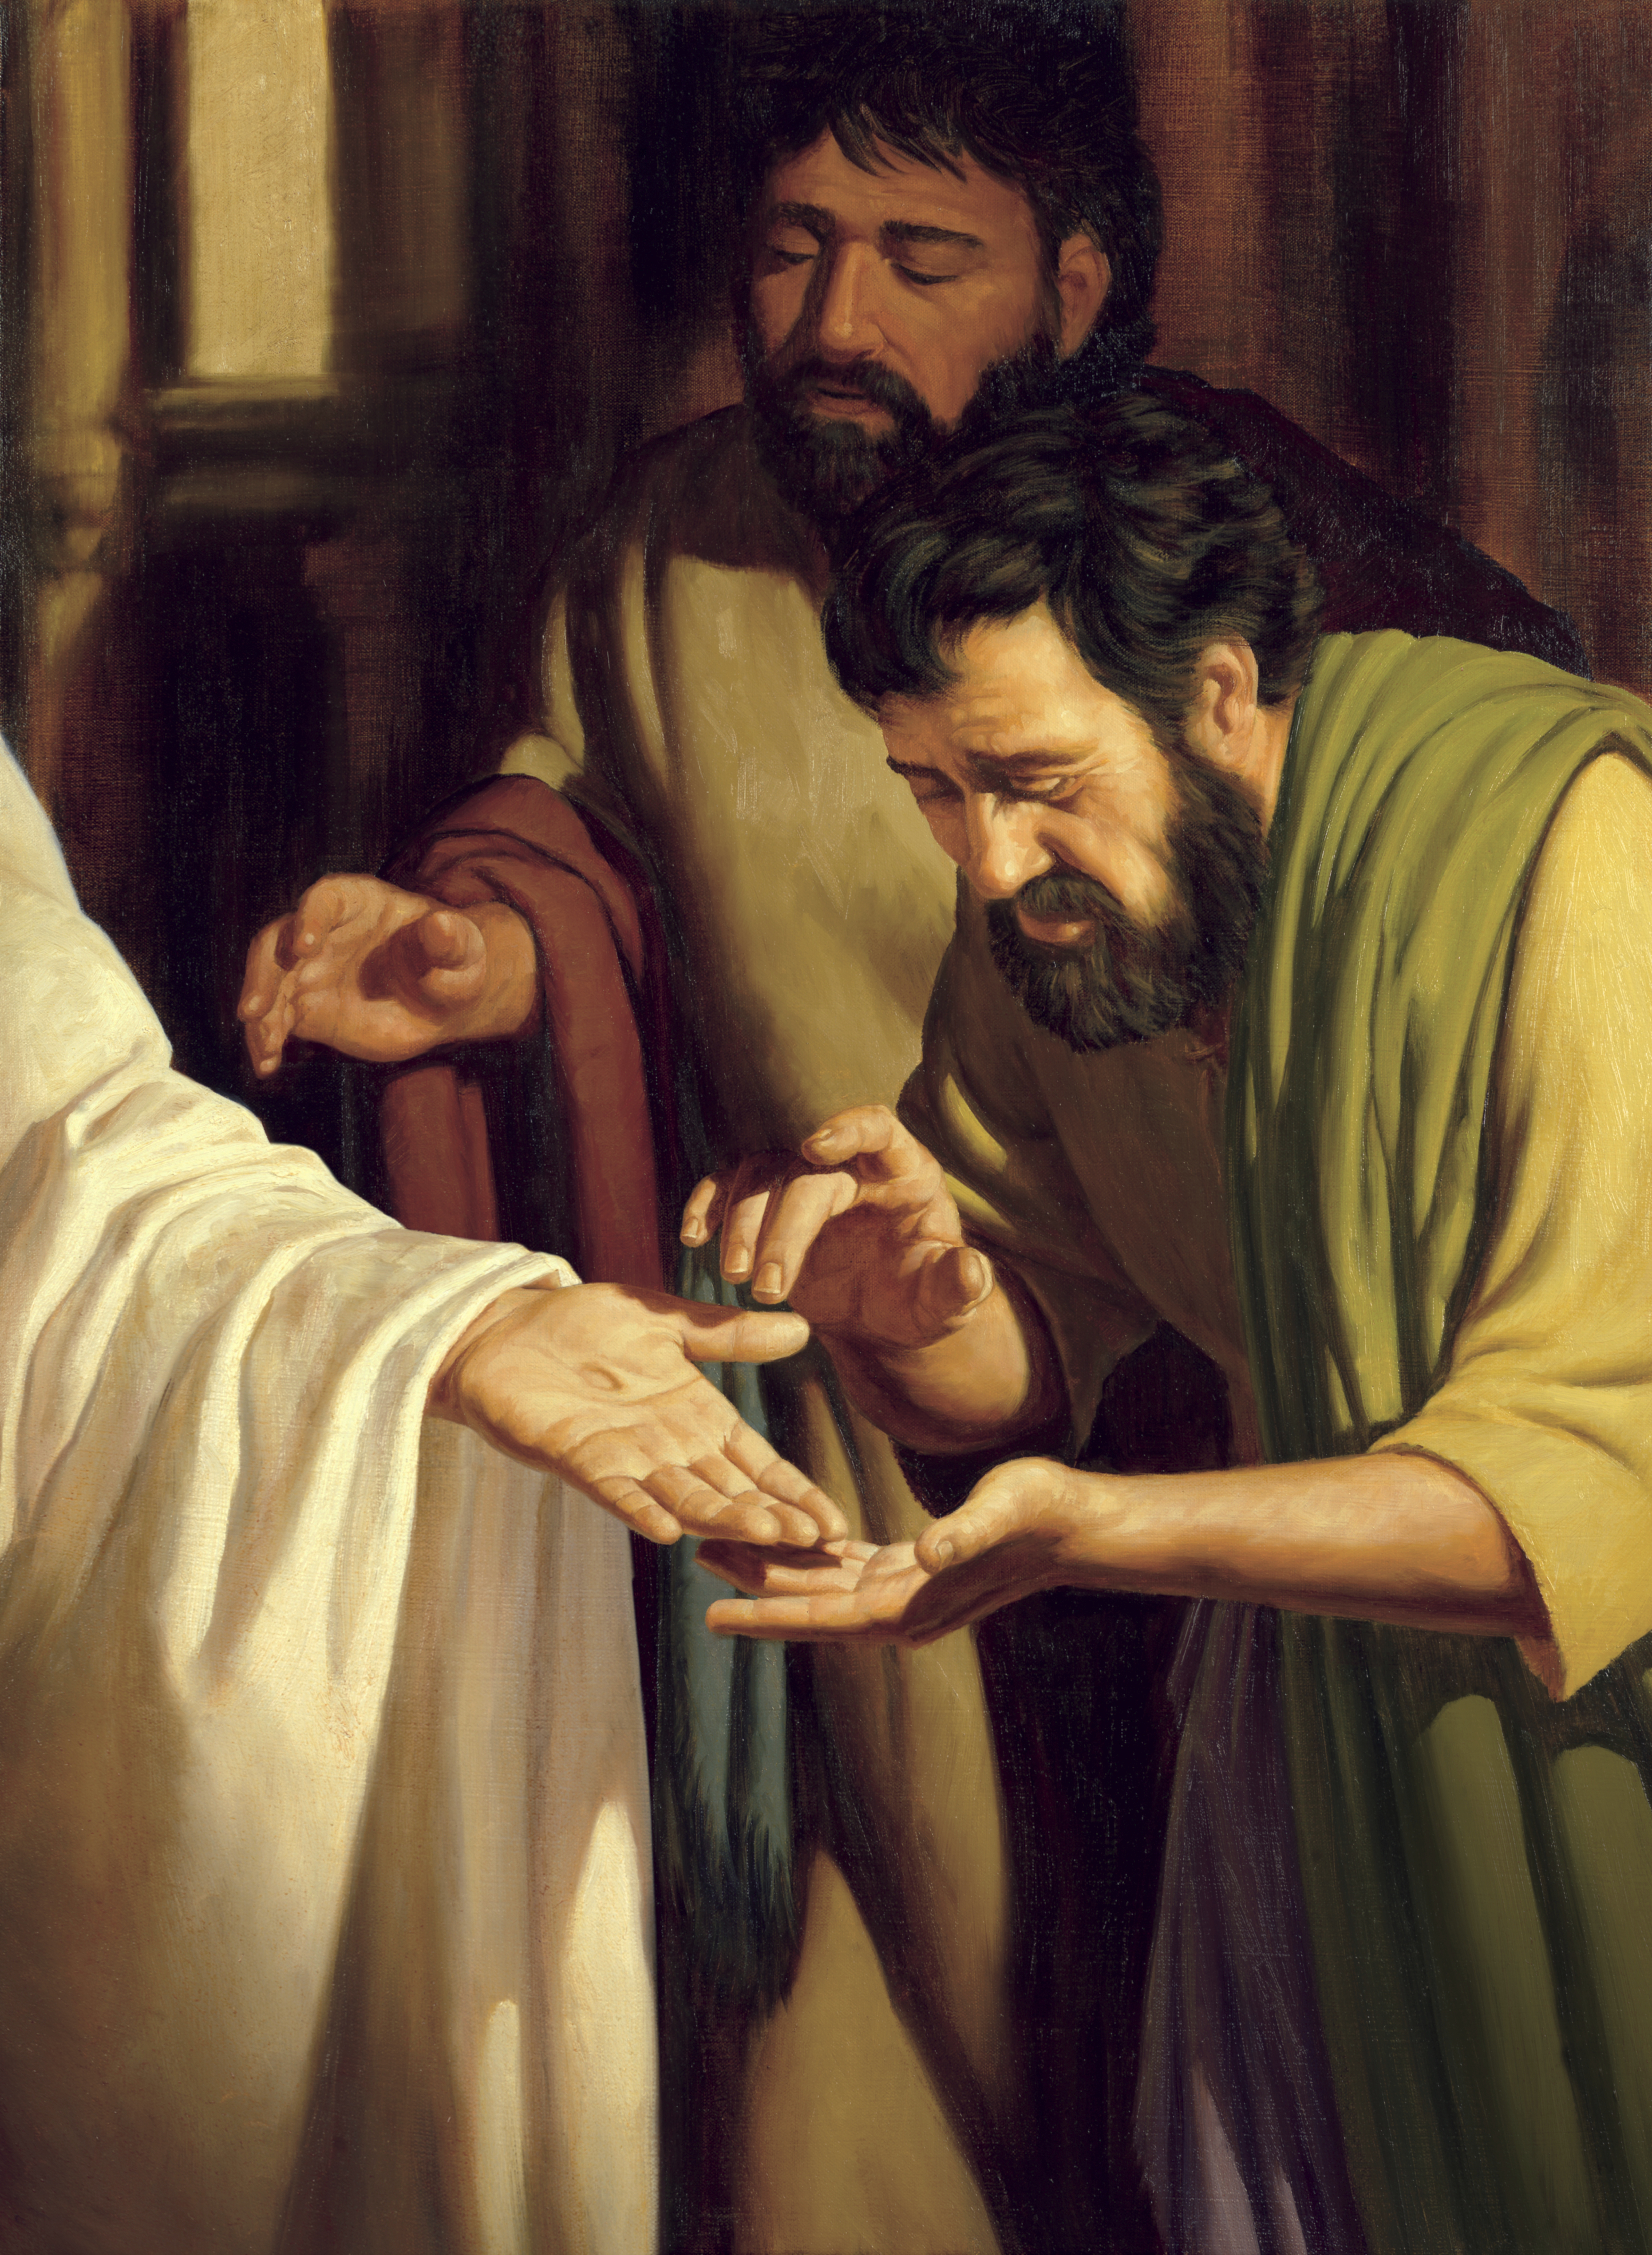 A painting by Jeff Ward depicting two of Christ's Apostles looking at the wounds in His hands.